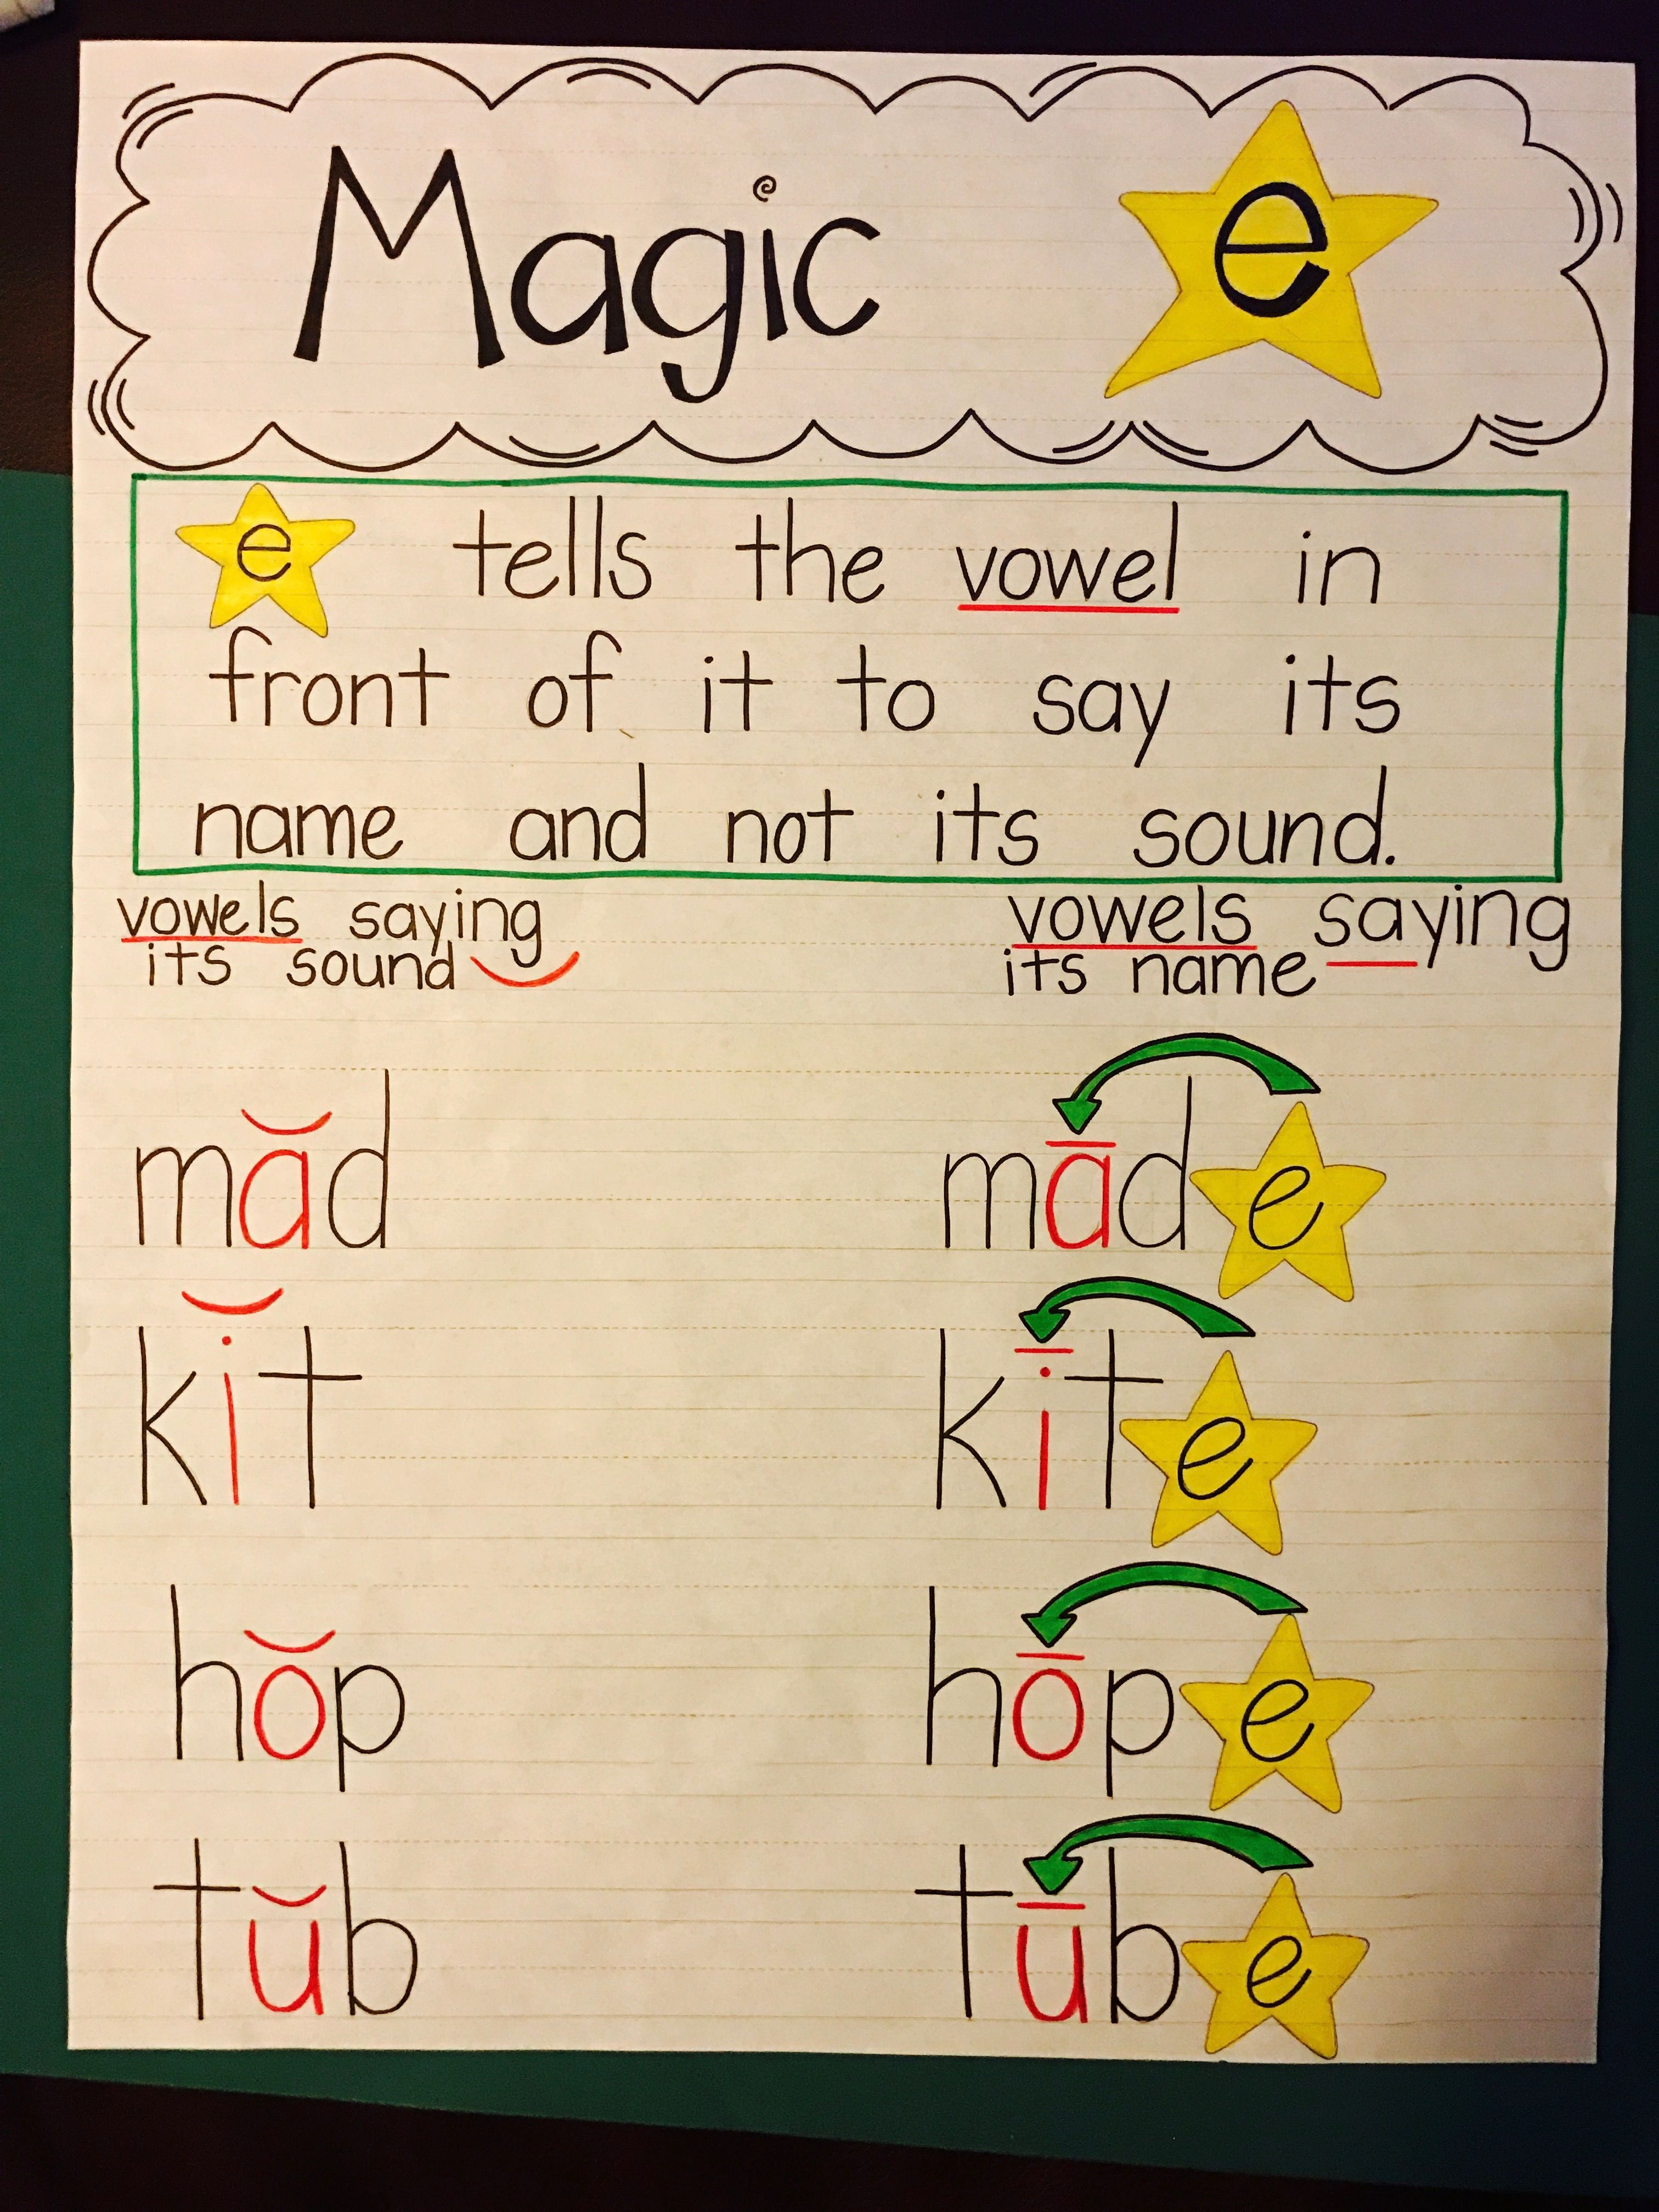 magic e poster with cvce examples